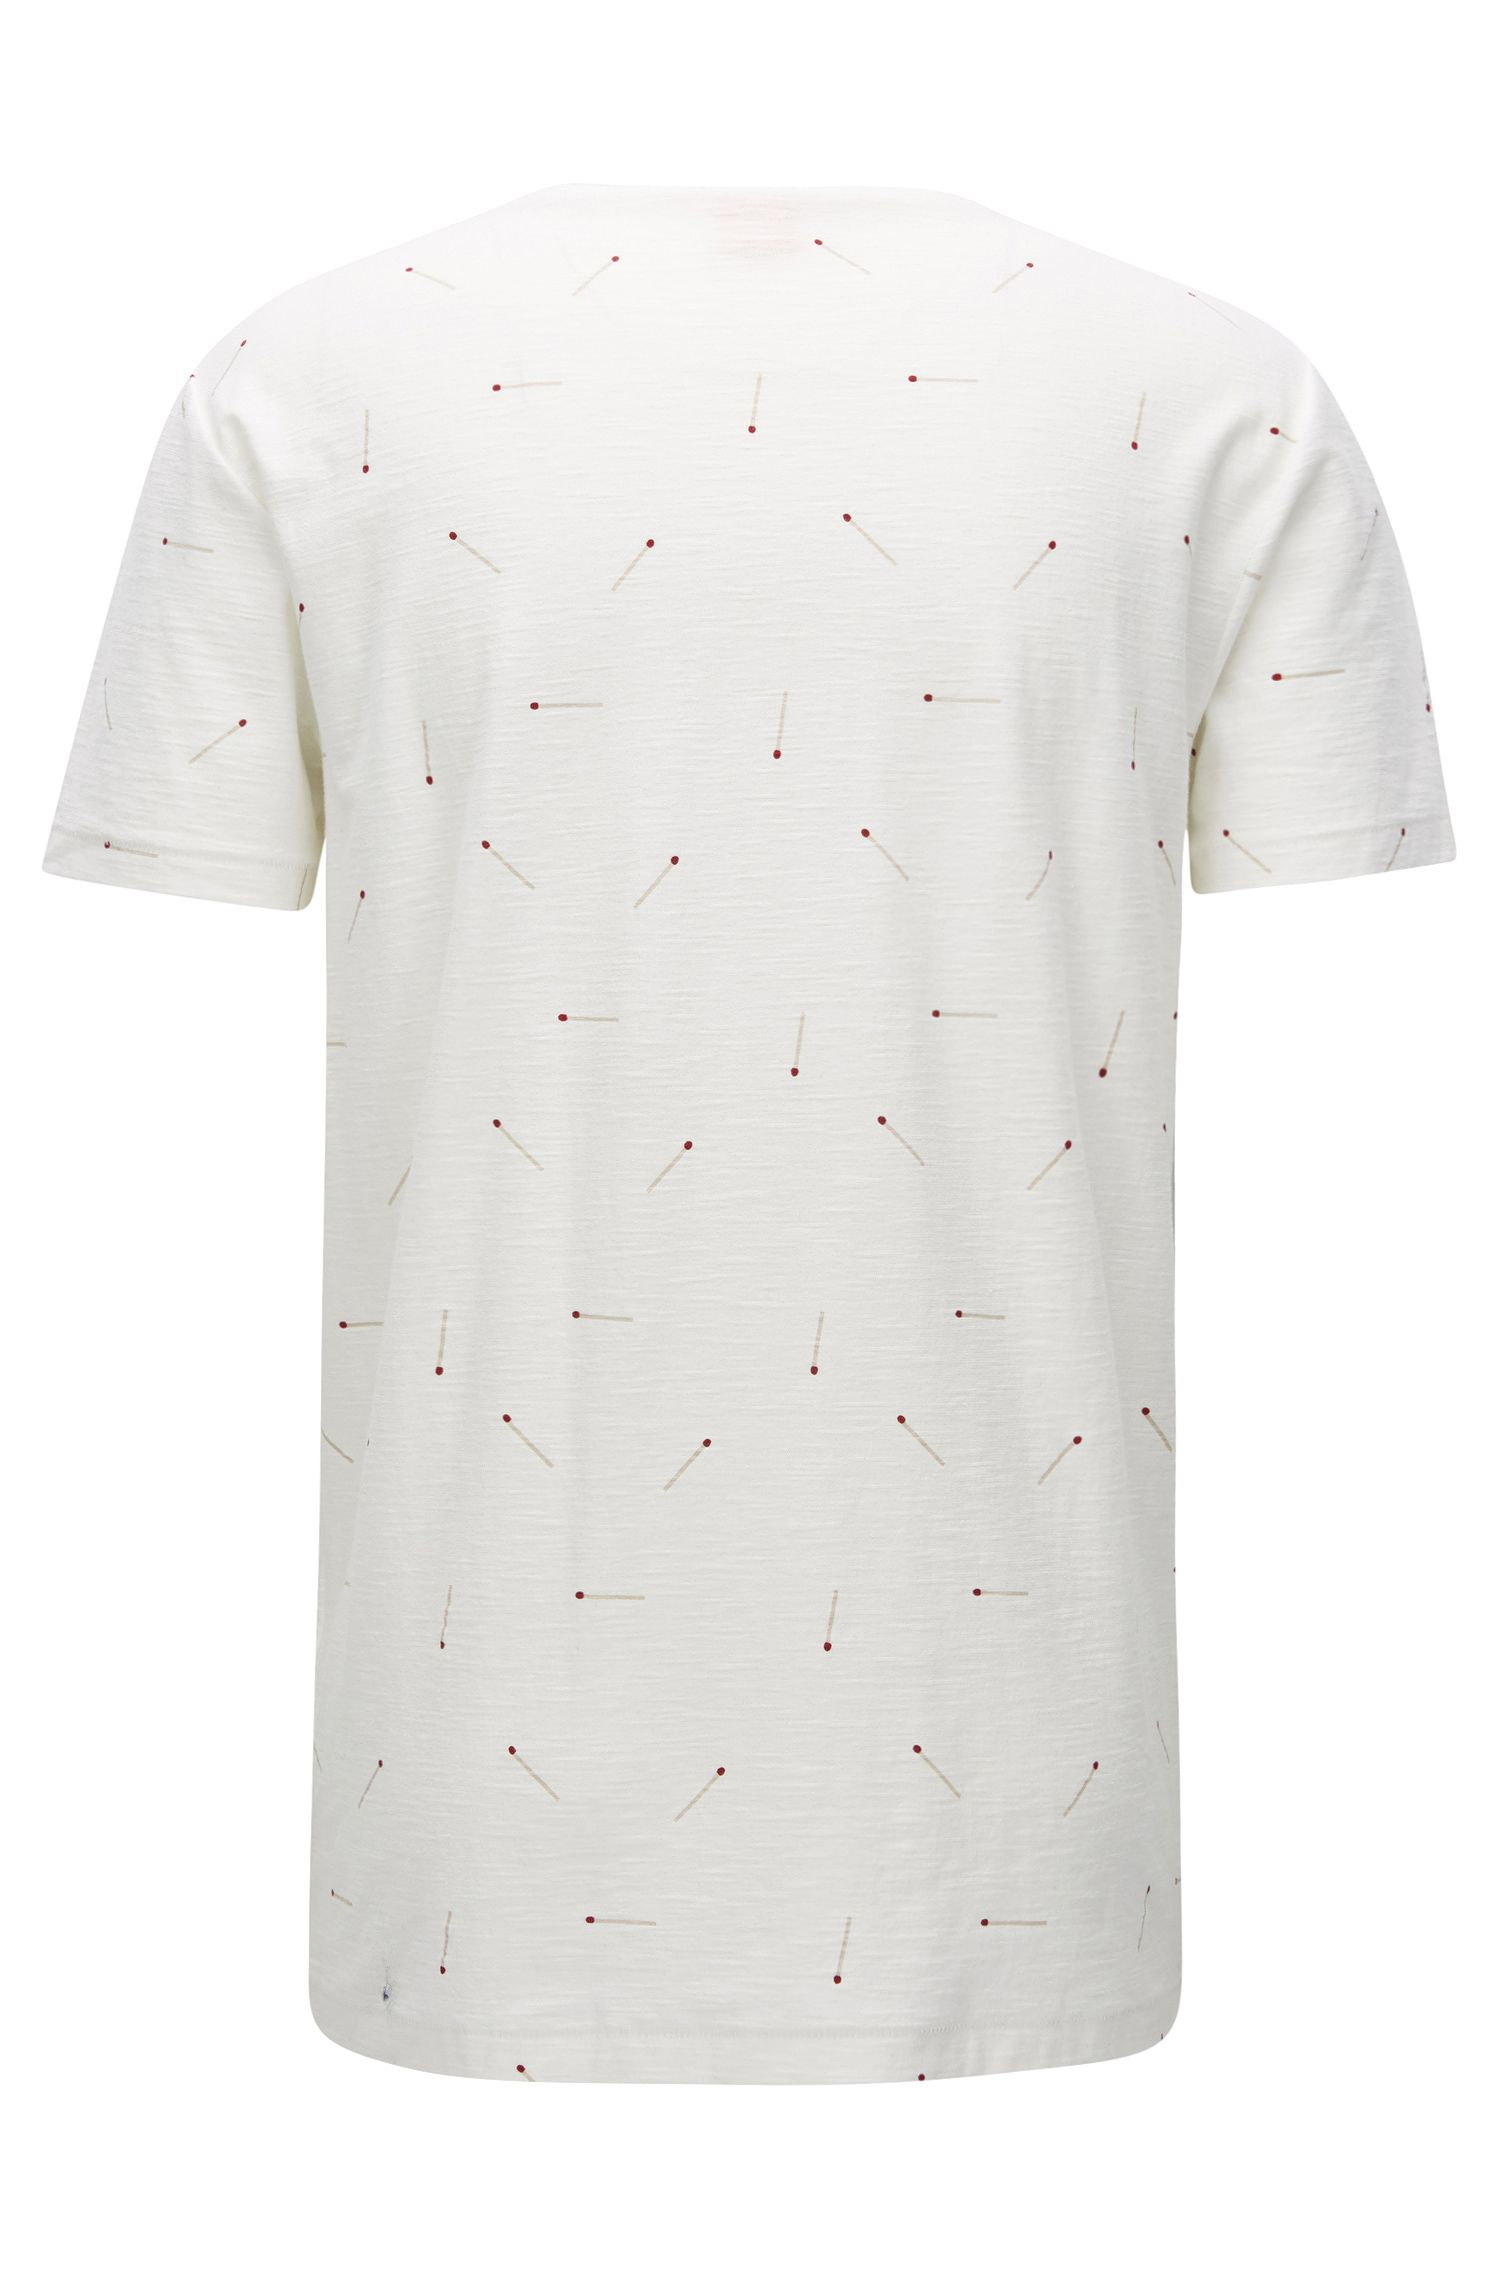 Printed Slub Cotton T-Shirt | Toasty